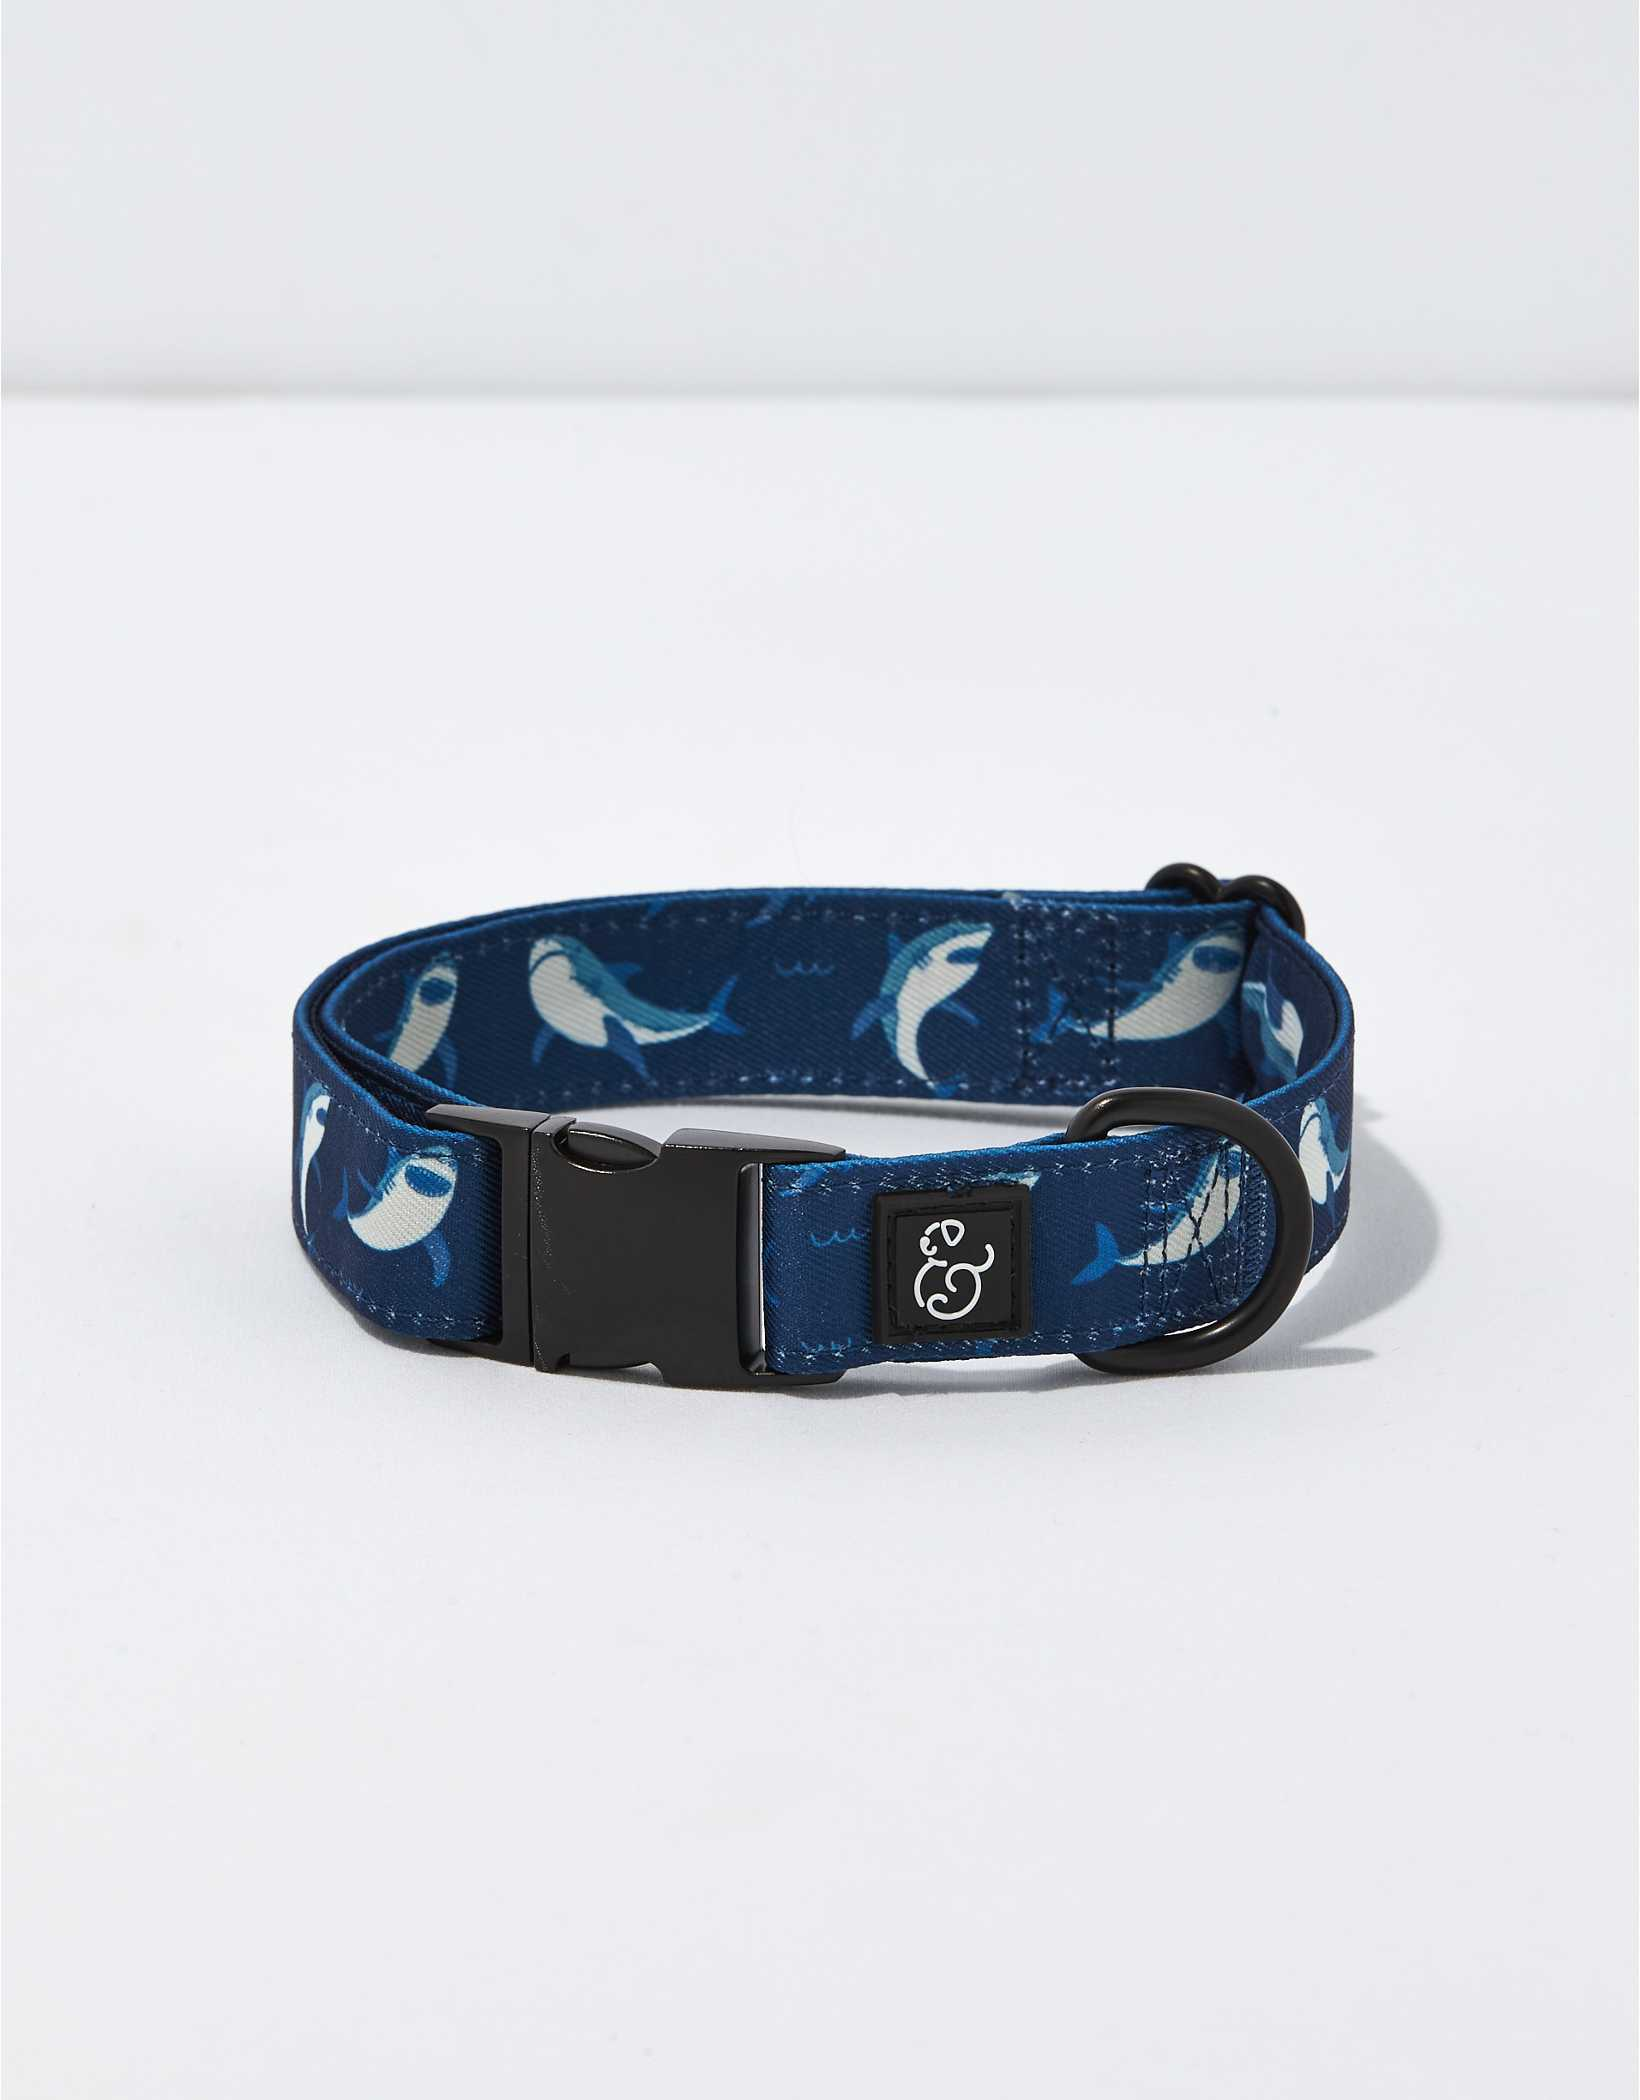 Lucy & Co. Shark Attack Collar